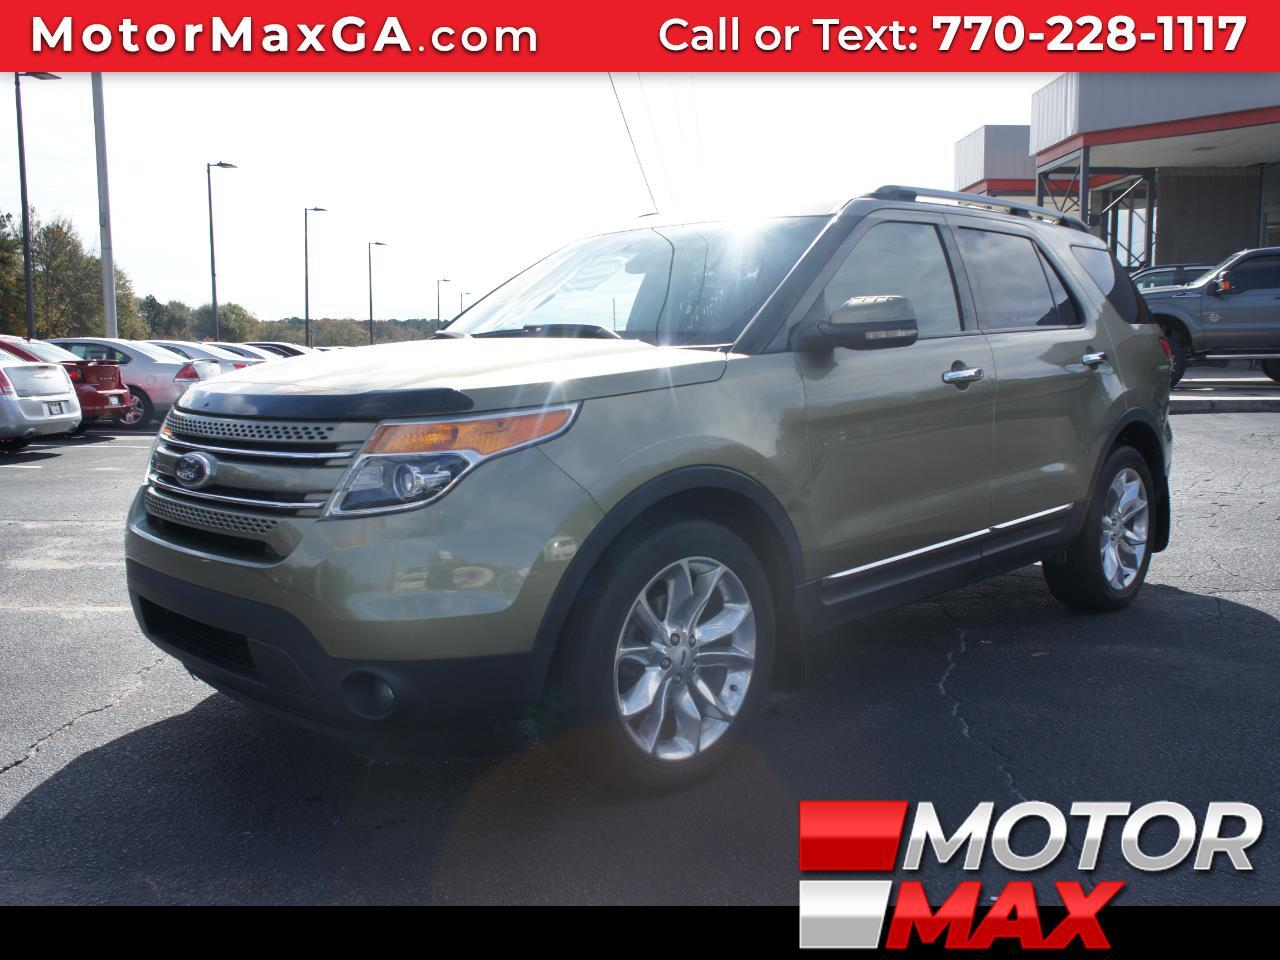 2012 Ford Explorer Limited 4.0L 4WD